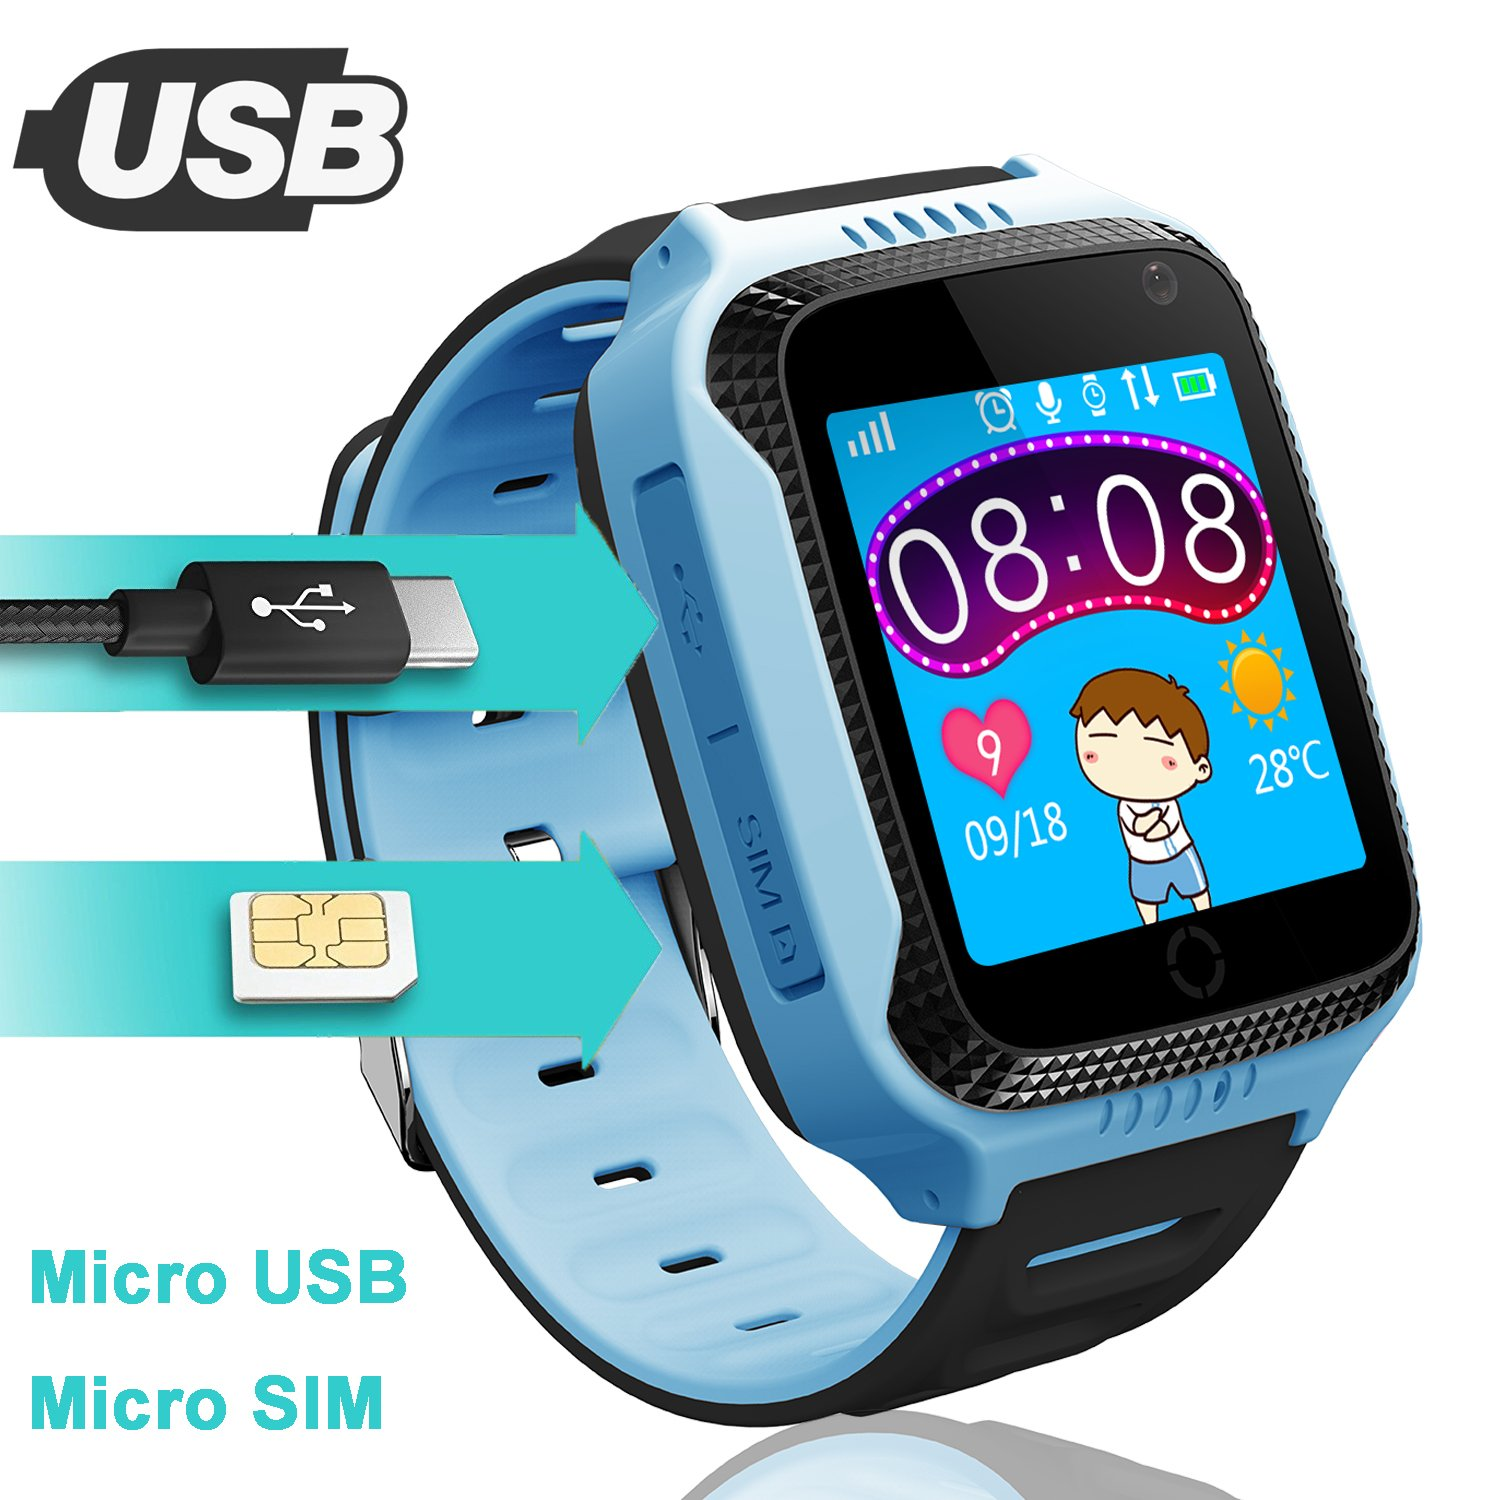 Kids GPS Smartwatch for Boys Girls - Student Fitness Tracker Watch GPS Tracker Wristband Phone with Game SOS Voice Chat Alarm Clock Camera Flashlight ...